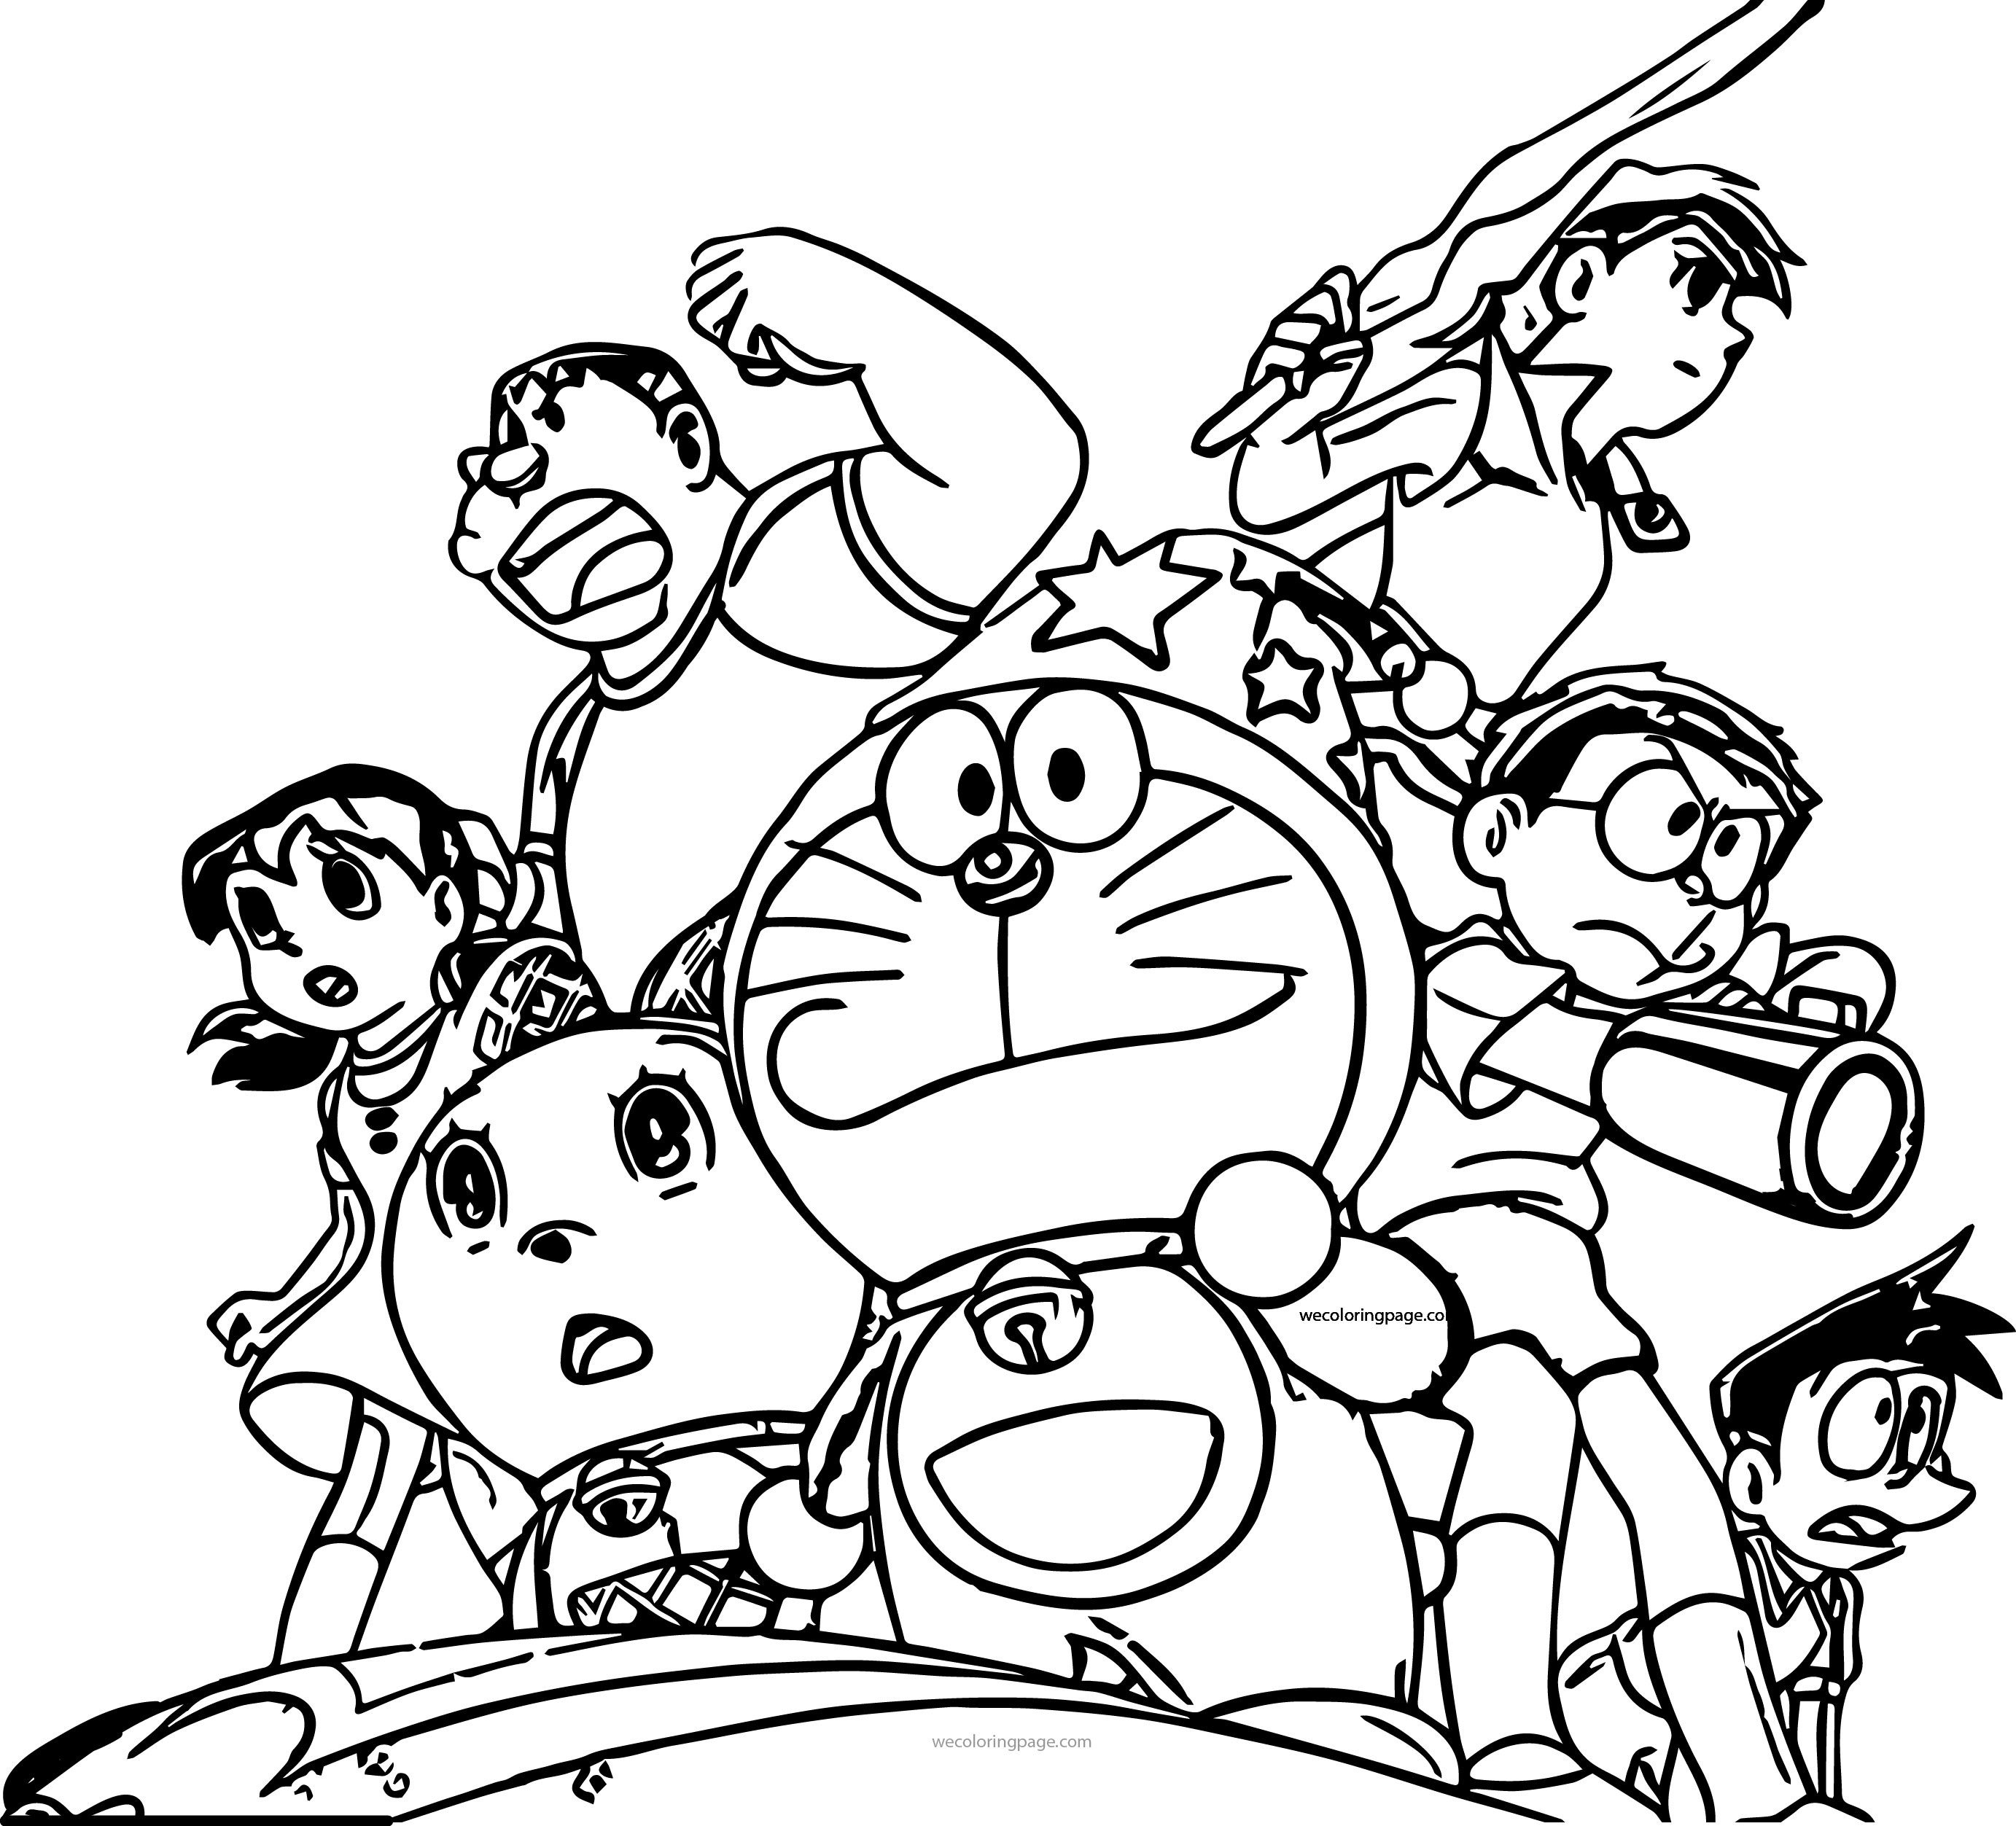 Doraemon Star Team Coloring Page